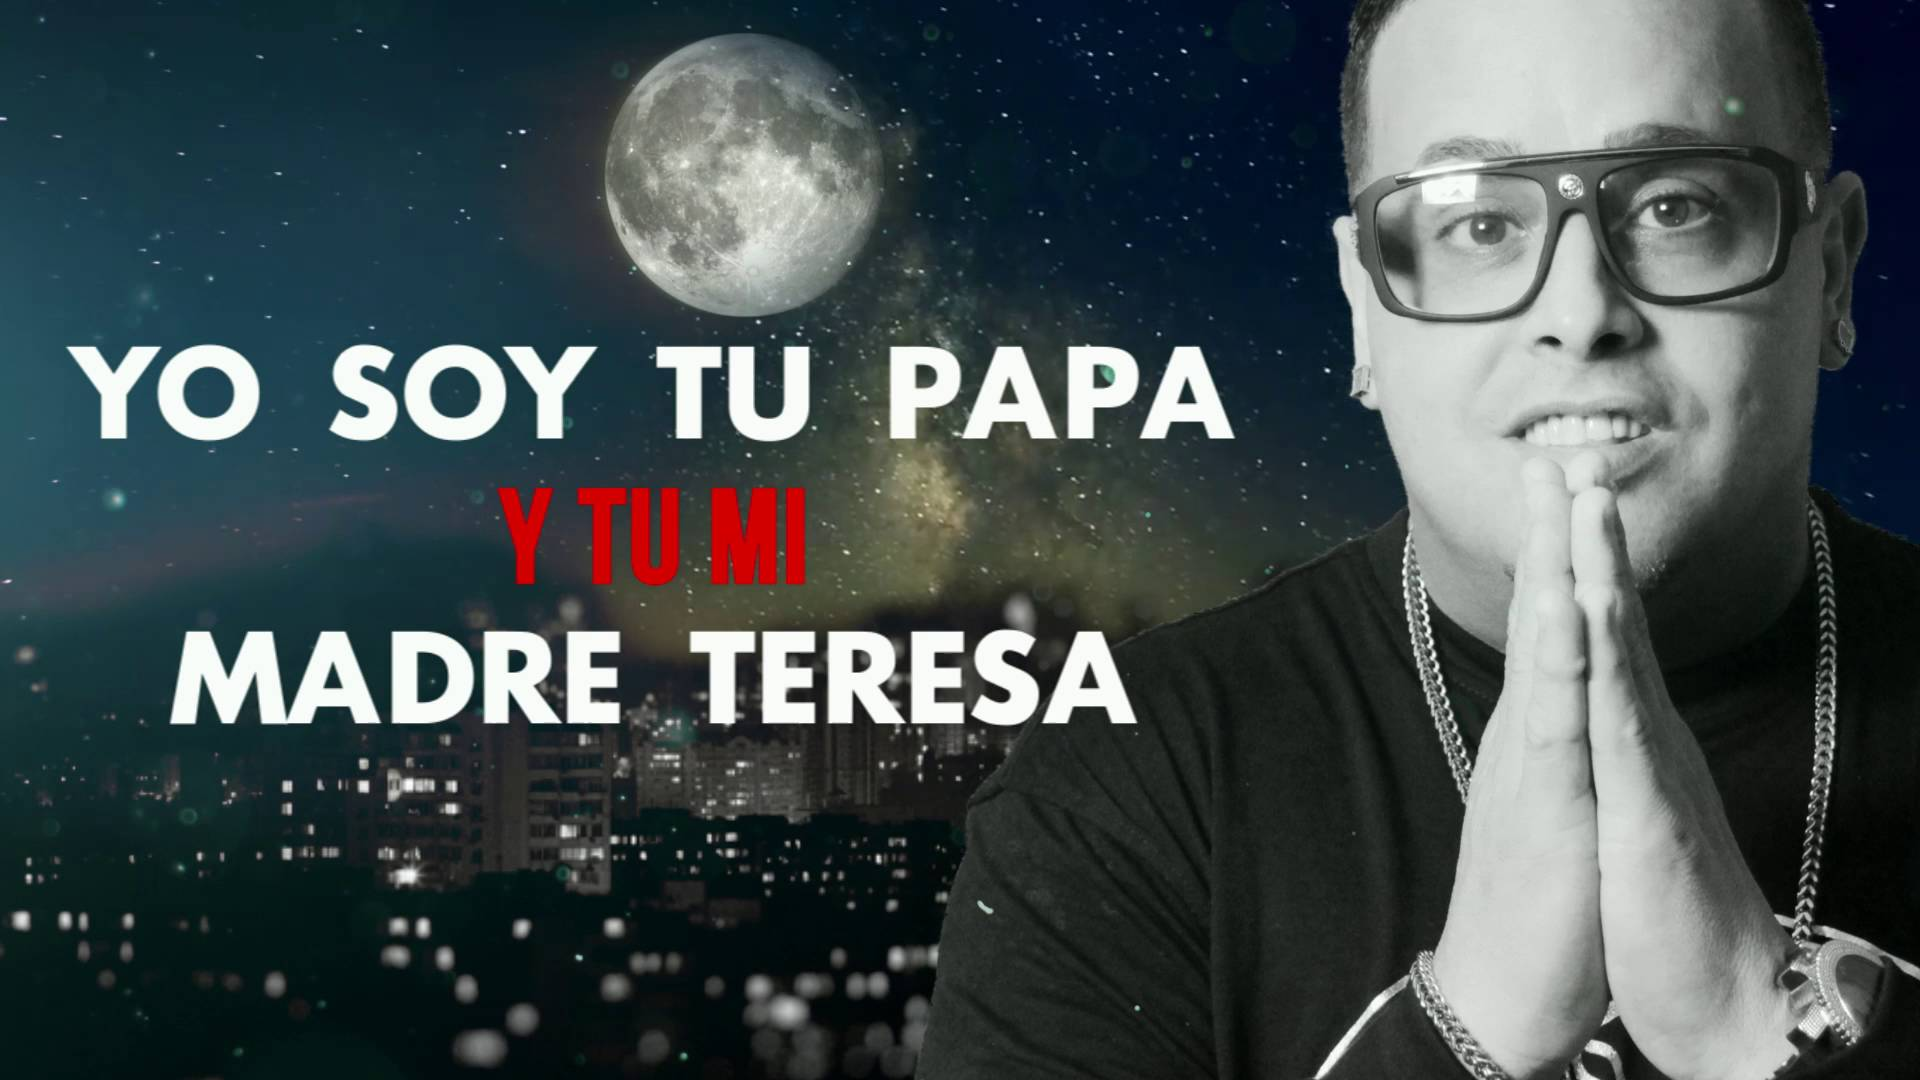 Yaga – Sexo & Locura (Video Lyric)